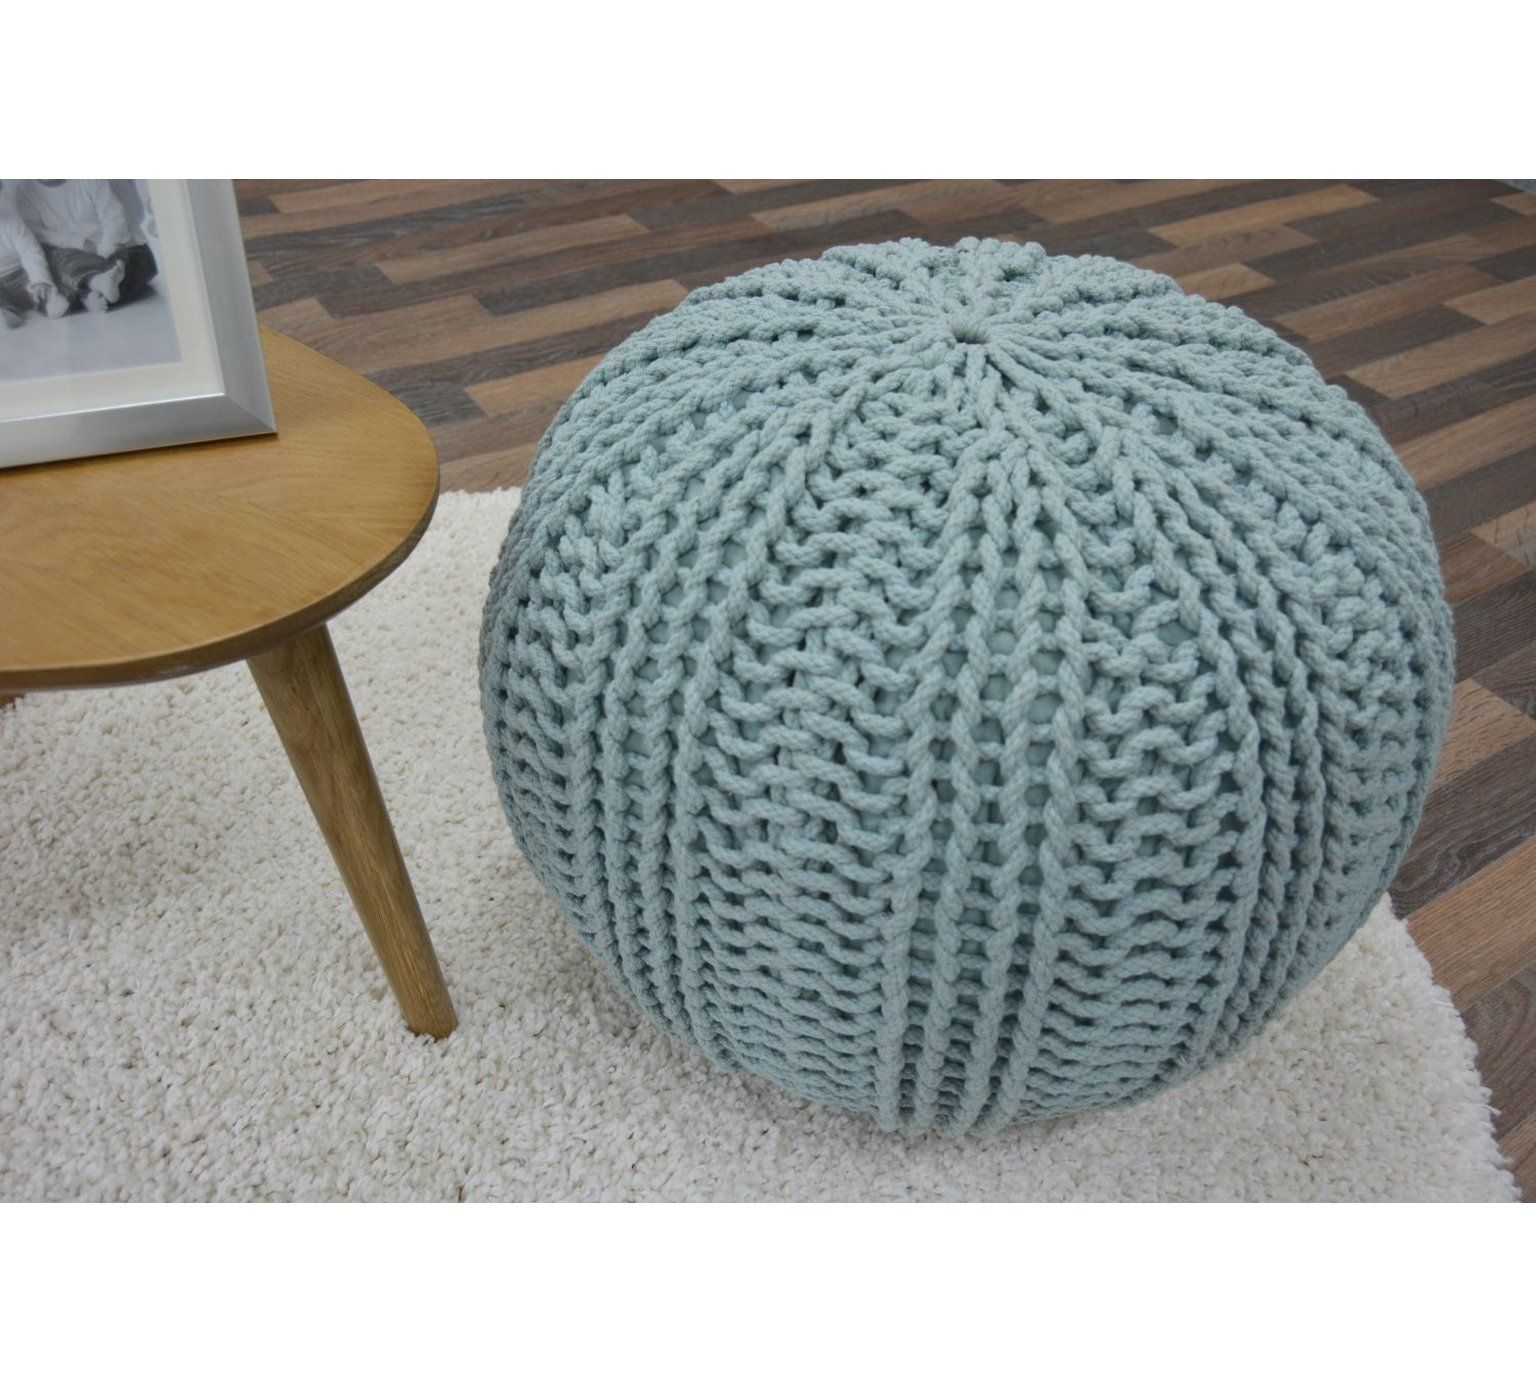 Buy Knitted Pouffe Footstool - Duck Egg at Argos.co.uk, visit Argos ...